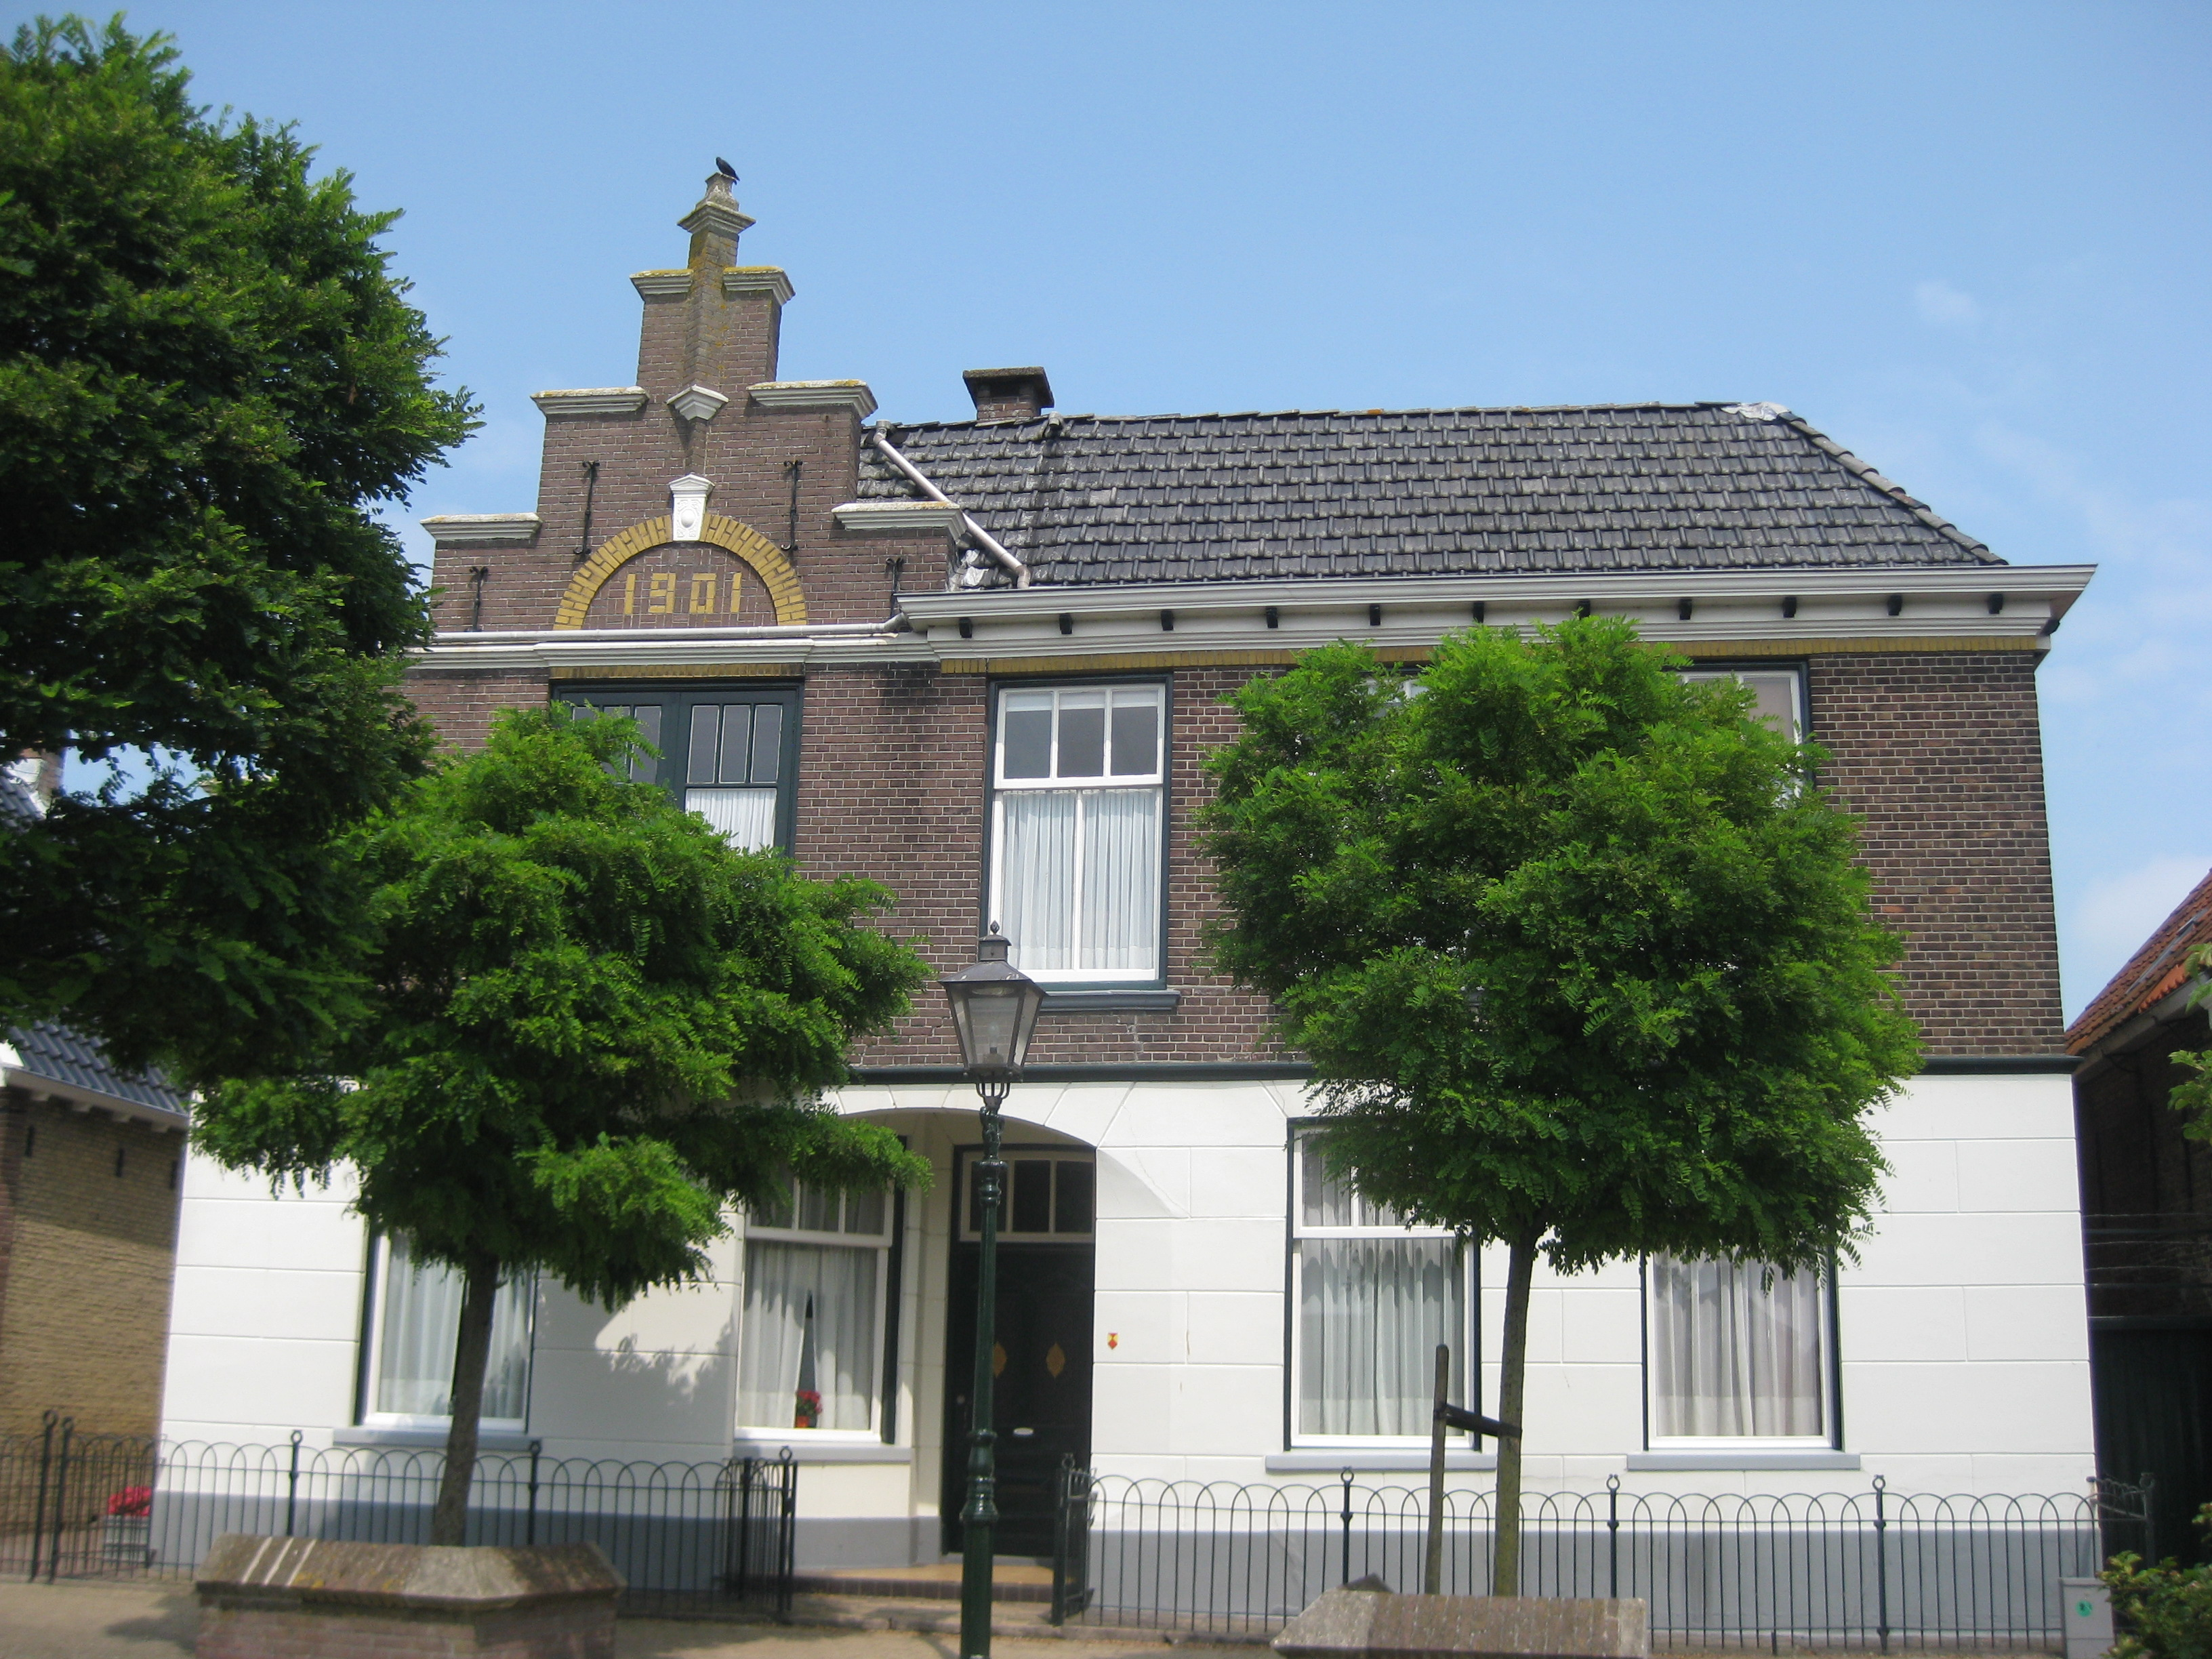 File:Kortestreek 30, Lemmer.JPG - Wikimedia Commons